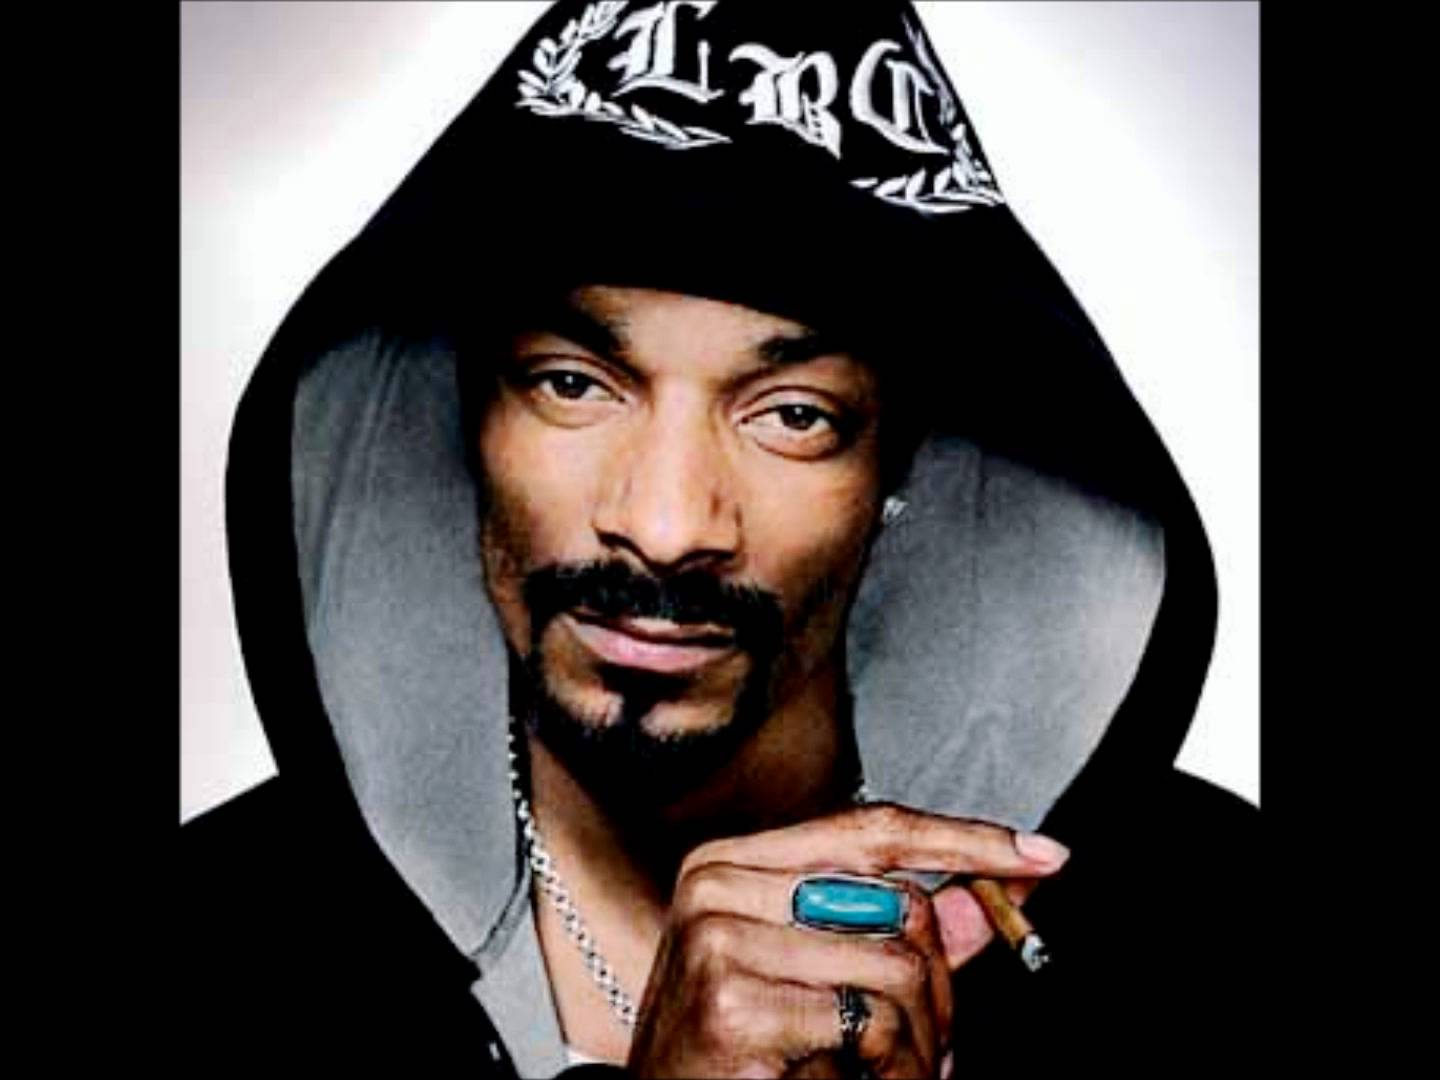 Snoop Dogg - Smoke Weed Every Day (Remix)